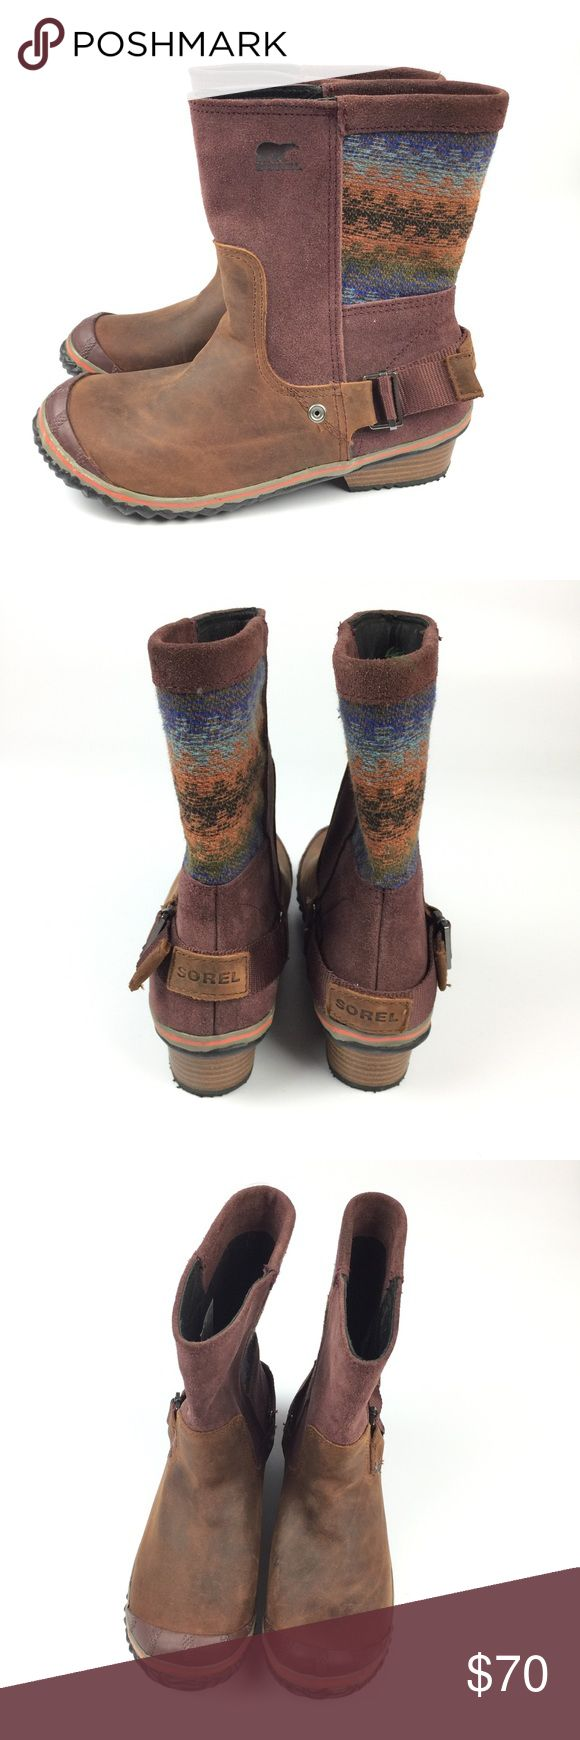 Sorel Slimshortie Maroon Woven Stripe Boots // 8 New without box. A few scuffs from storage. Size 8. Sorel Shoes Winter & Rain Boots